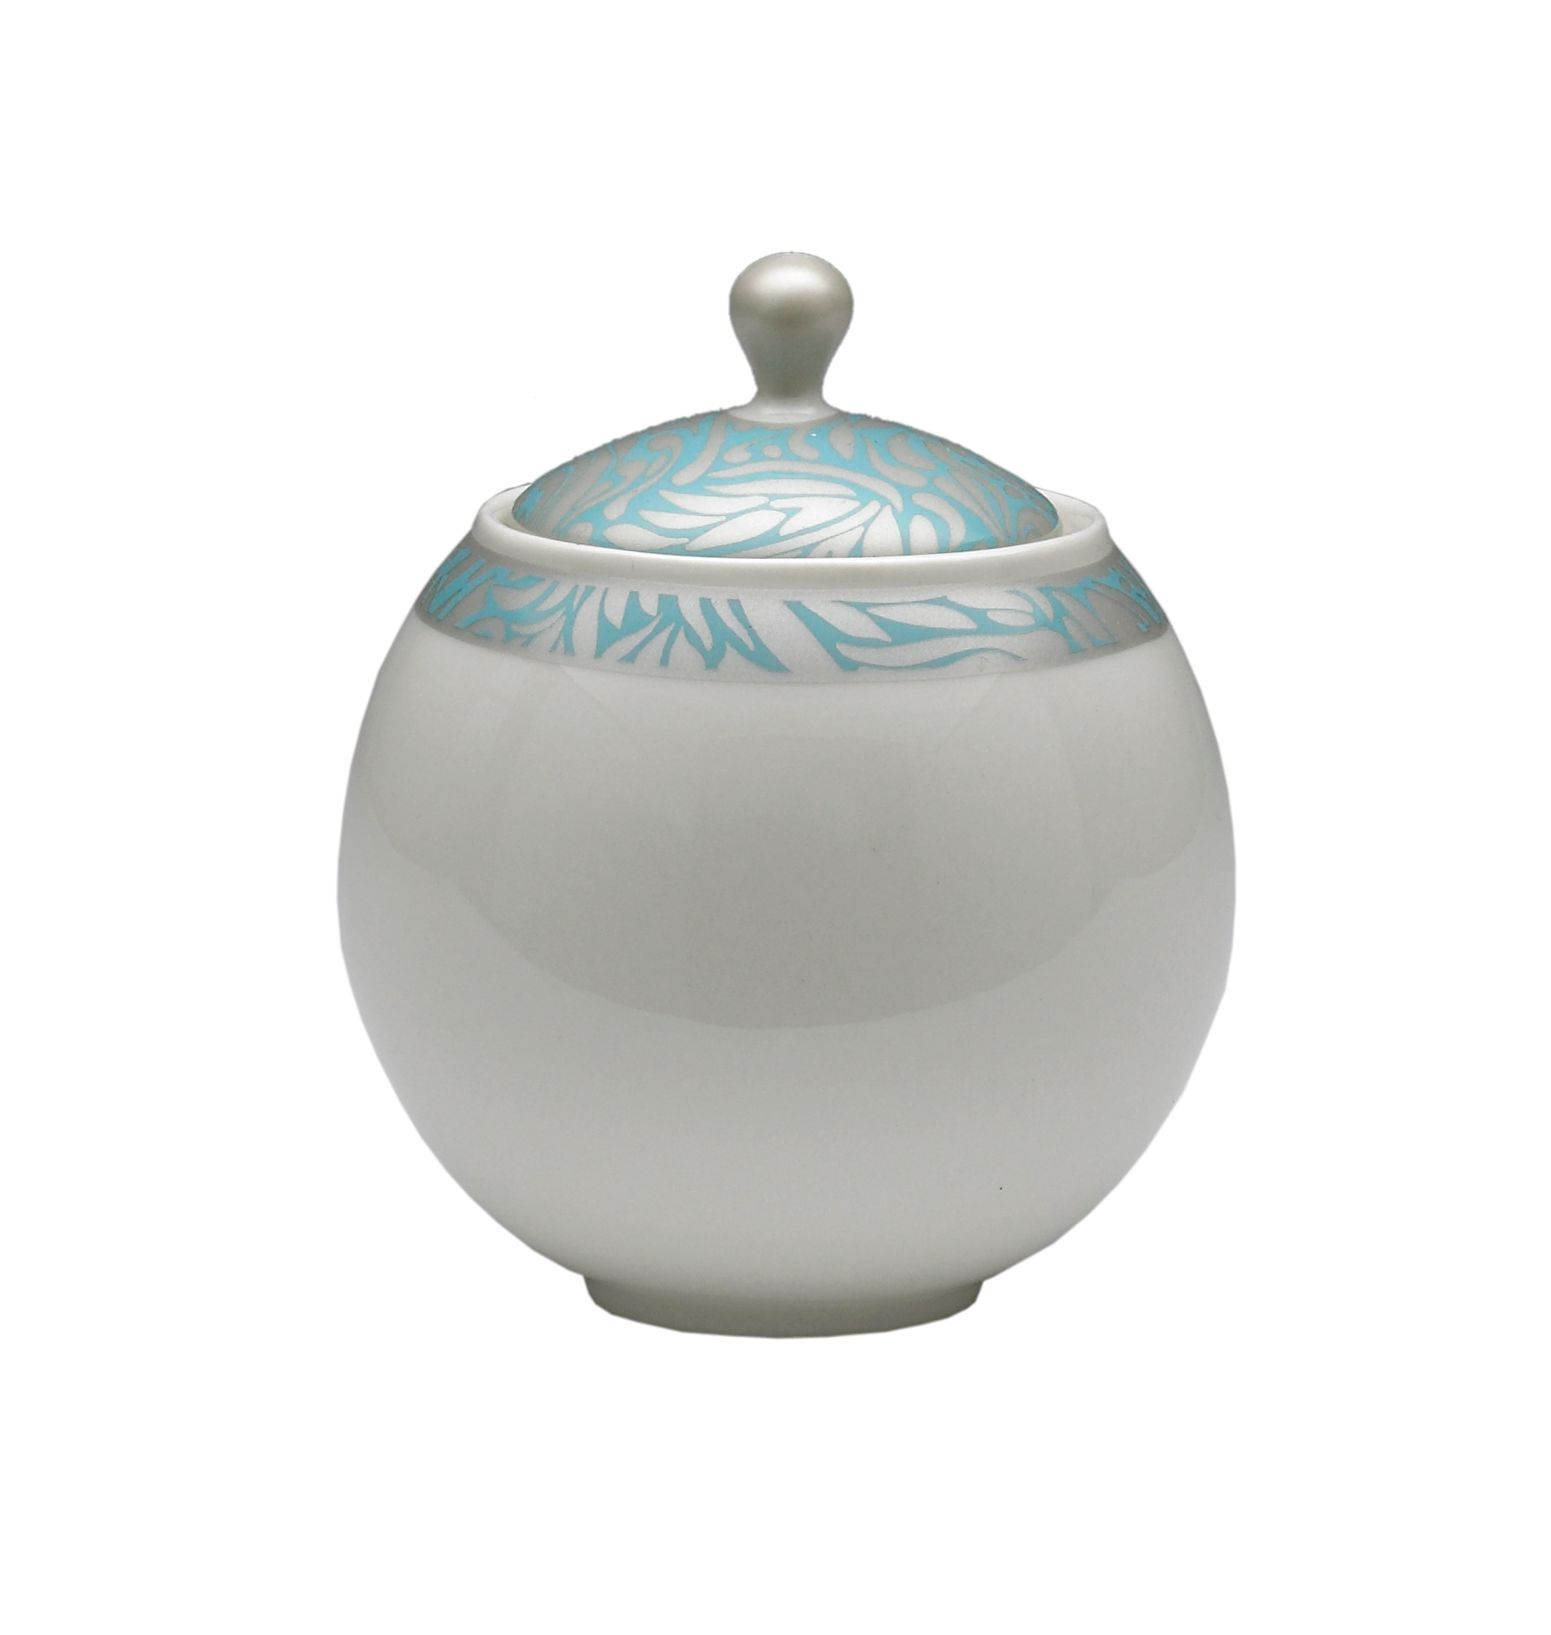 Monsoon Lucille teal covered sugar bowl